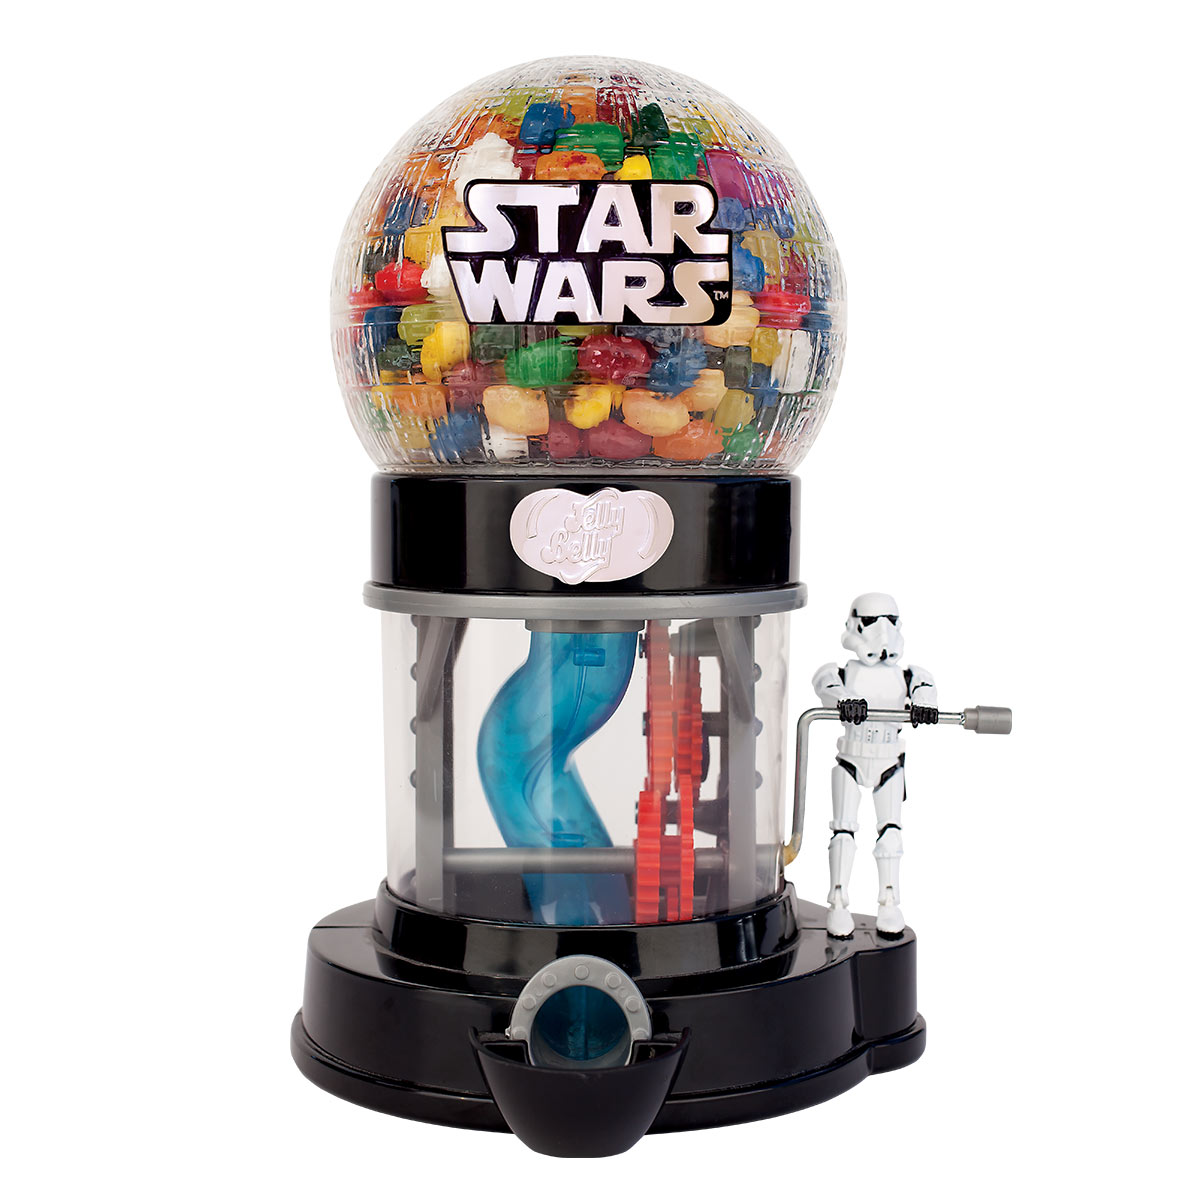 "STAR WARSâ""¢ Rogue One Bean Machine"